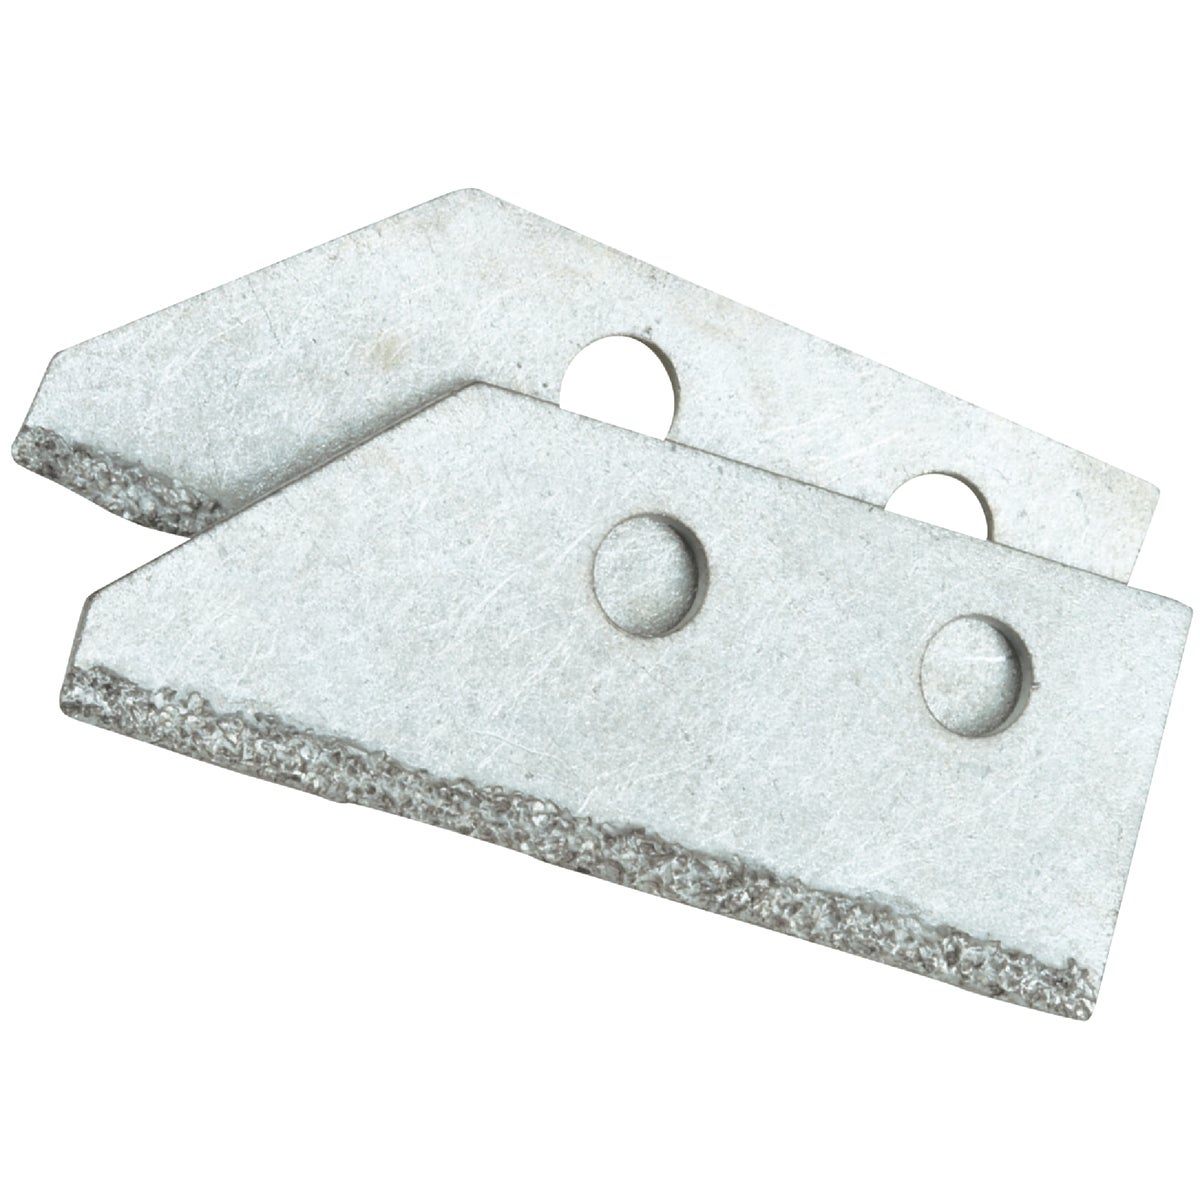 2PK GROUT SAW BLADE - 307894 by Do it Best